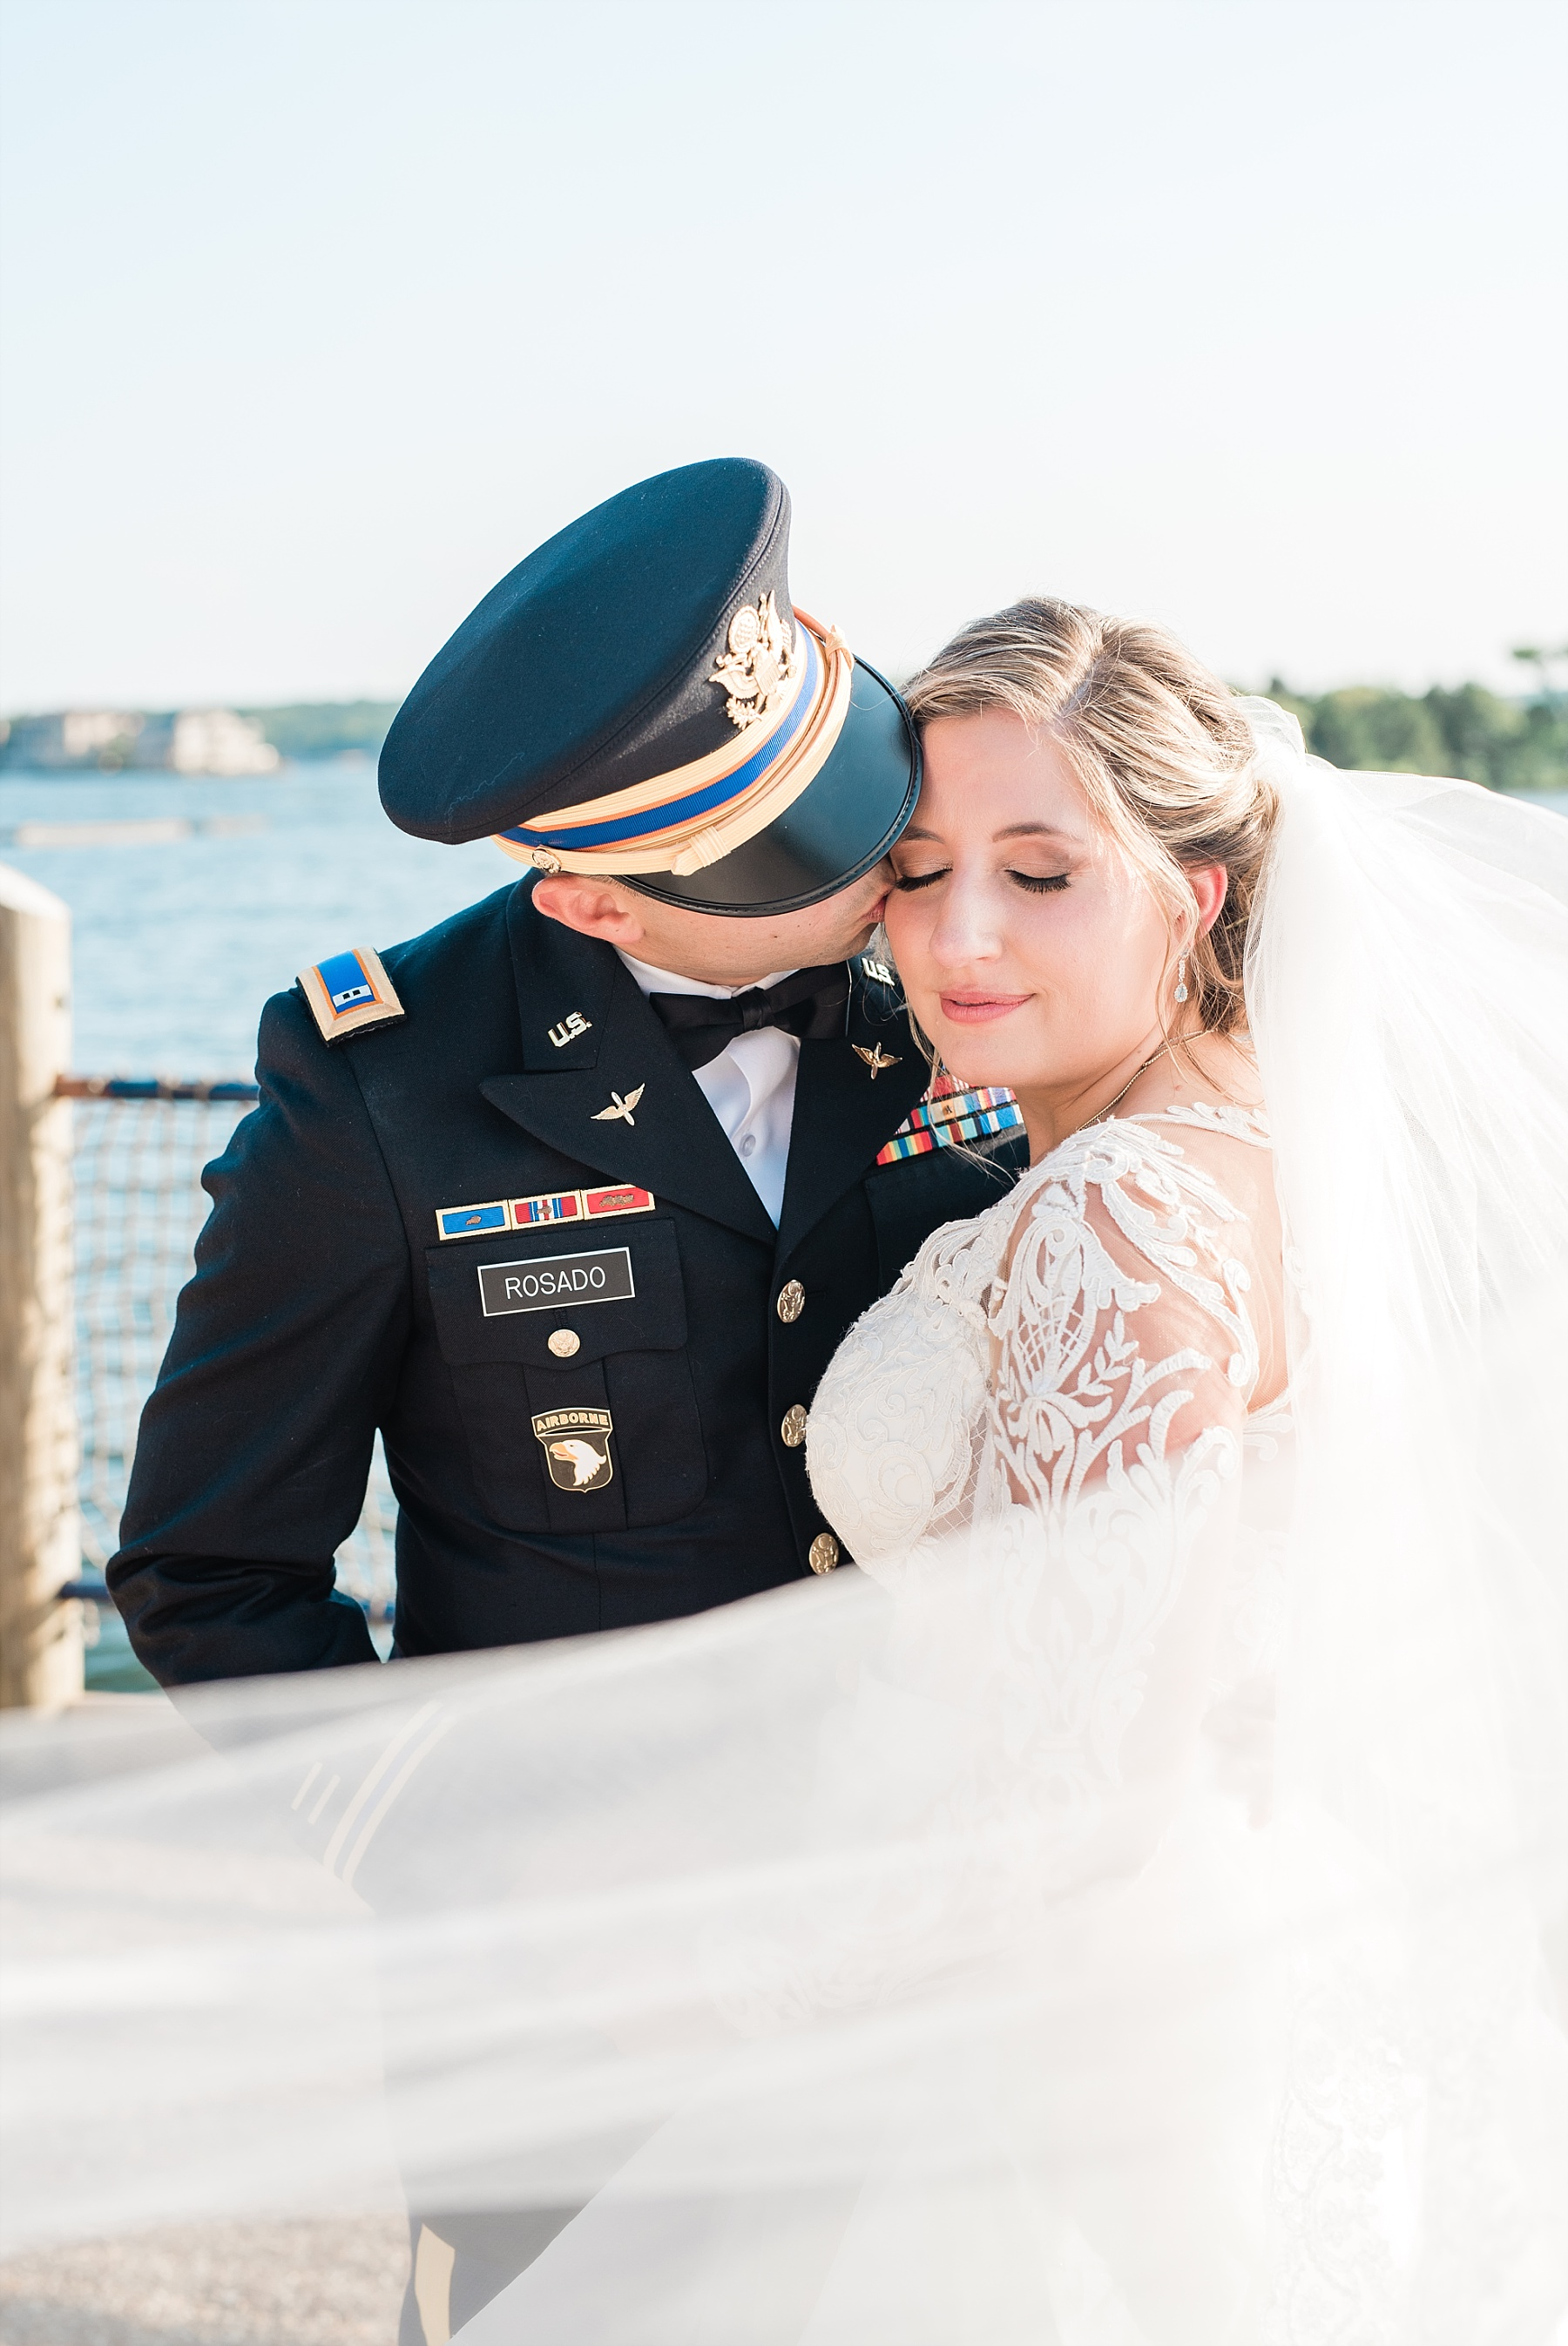 Beachside Sunset Wedding At Lodge Of Four Seasons At Lake Of The Ozarks By Kelsi Kliethermes Photography_0022.jpg